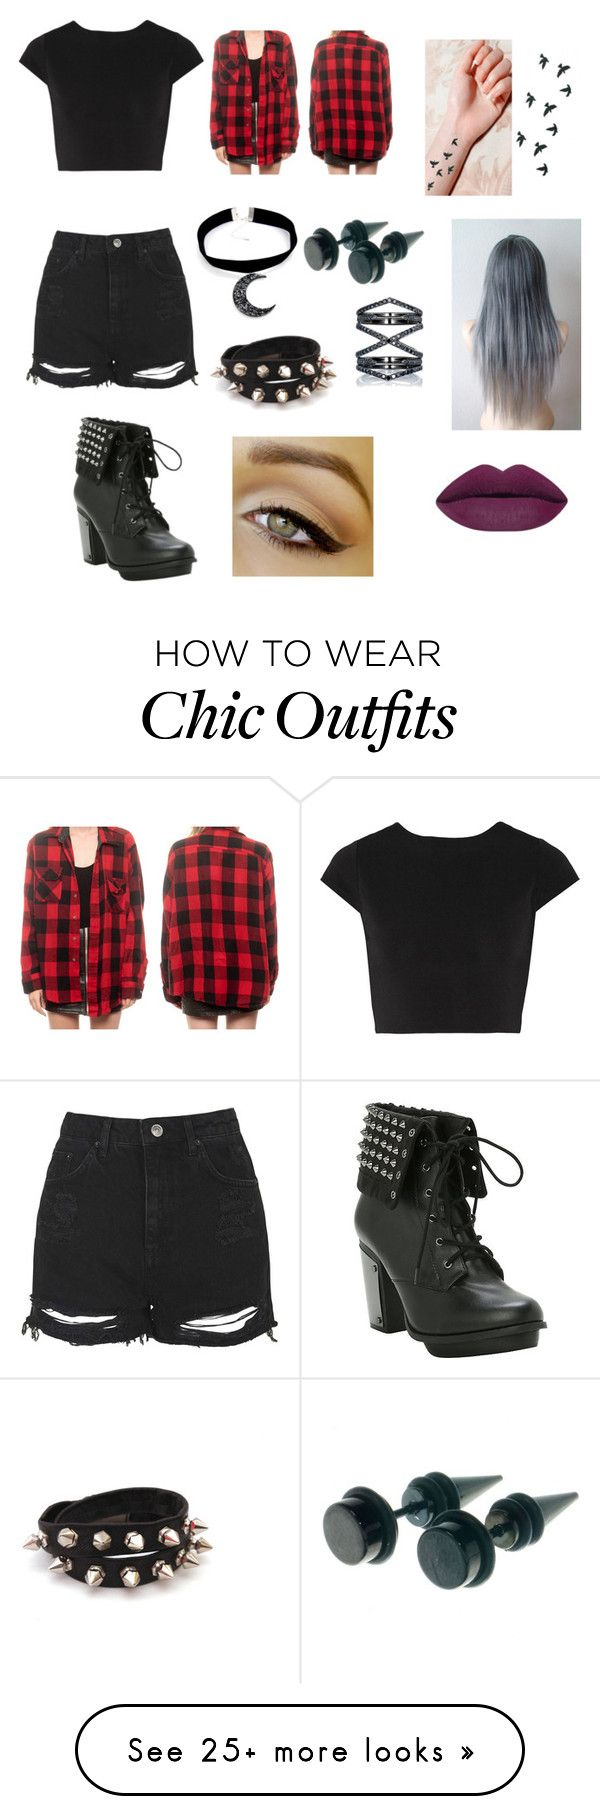 """Untitled #90"" by devonmichelleb on Polyvore featuring Alice + Olivia, Topshop, Eva Fehren, women's clothing, women's fashion, women, female, woman, misses and juniors"